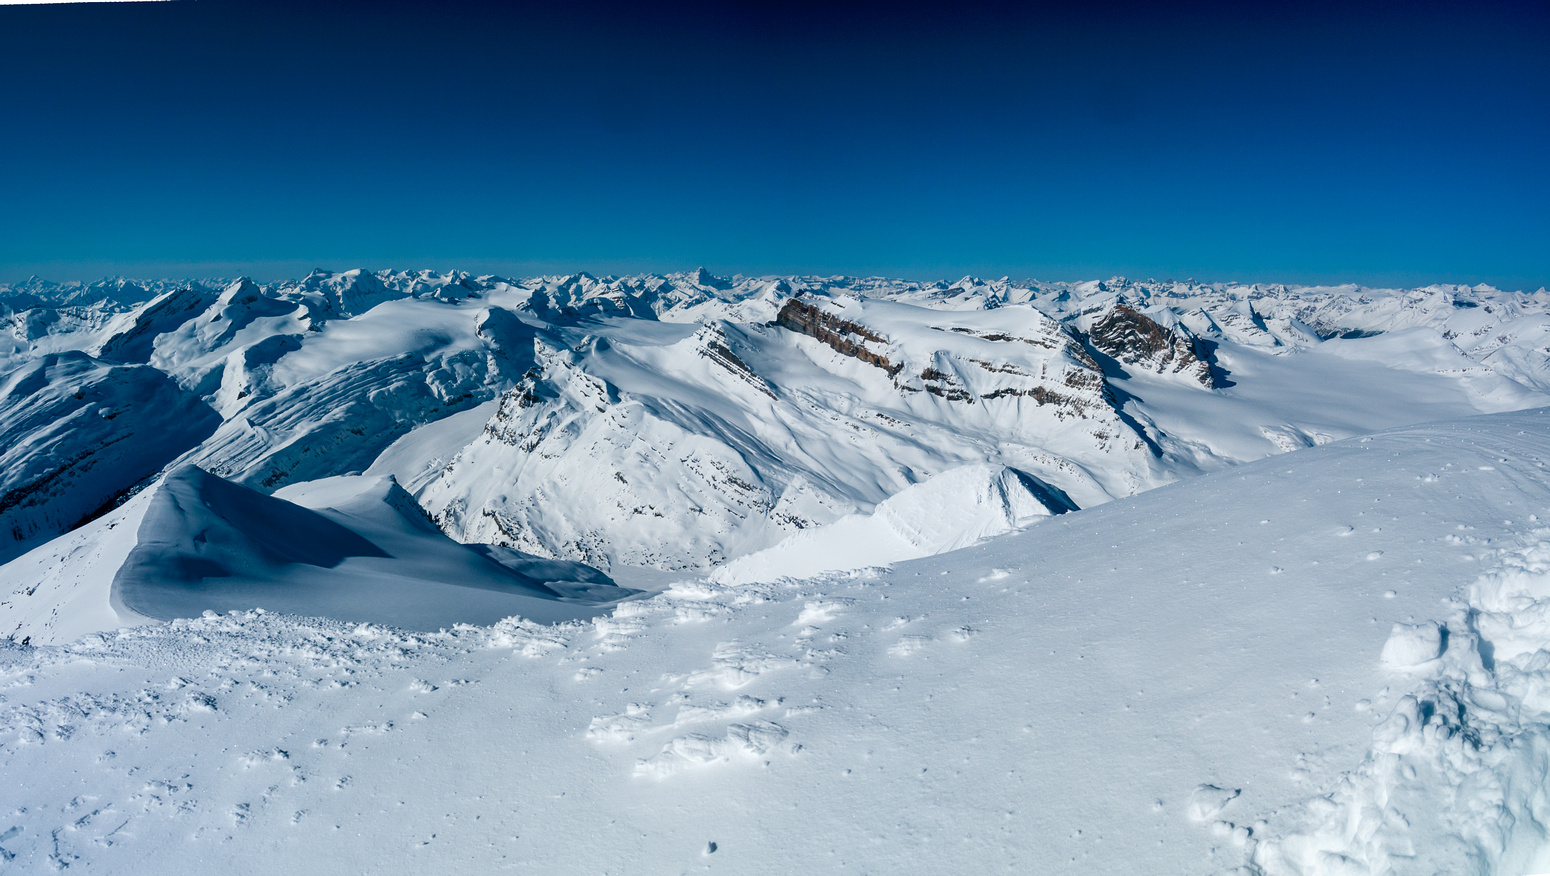 Incredible views over the entire Wapta Icefield.